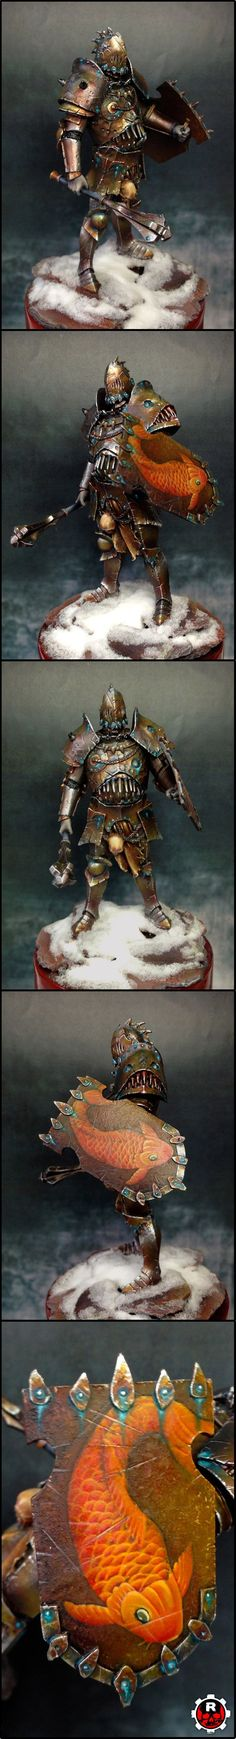 Love the metallics on this fig.